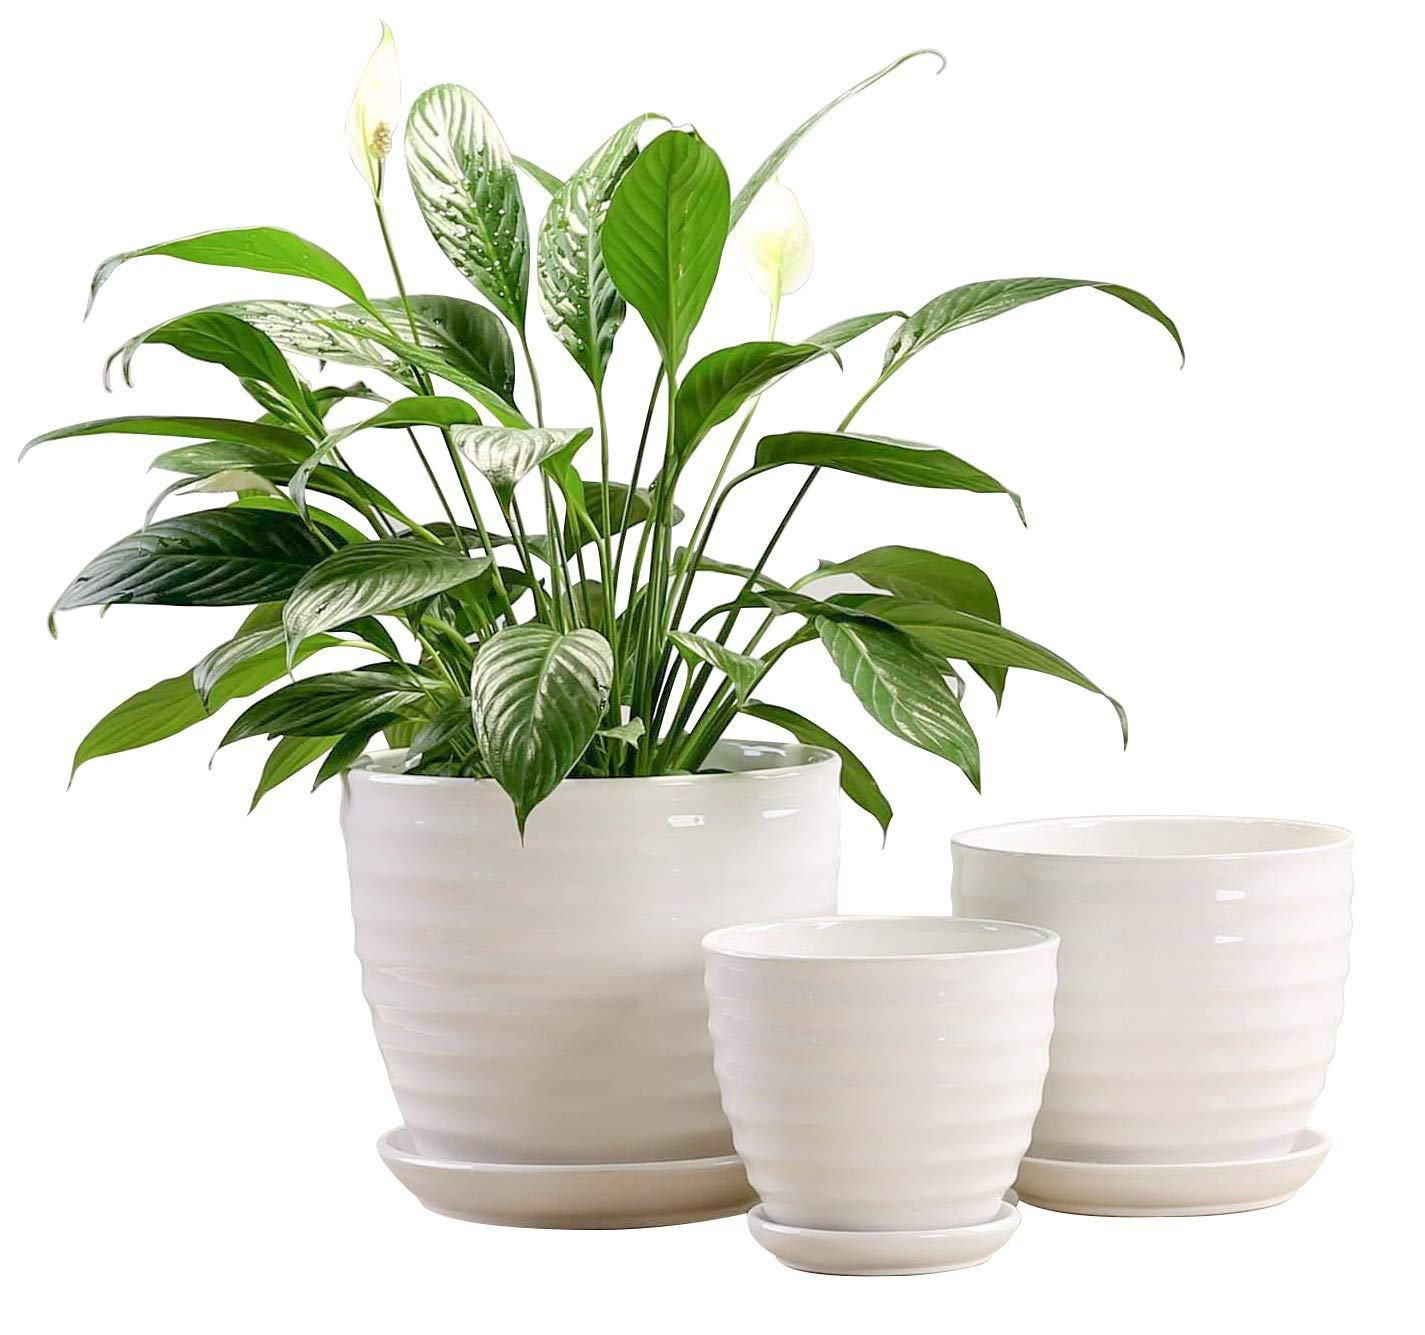 15 cheap plant pots under 20 you need in your home today